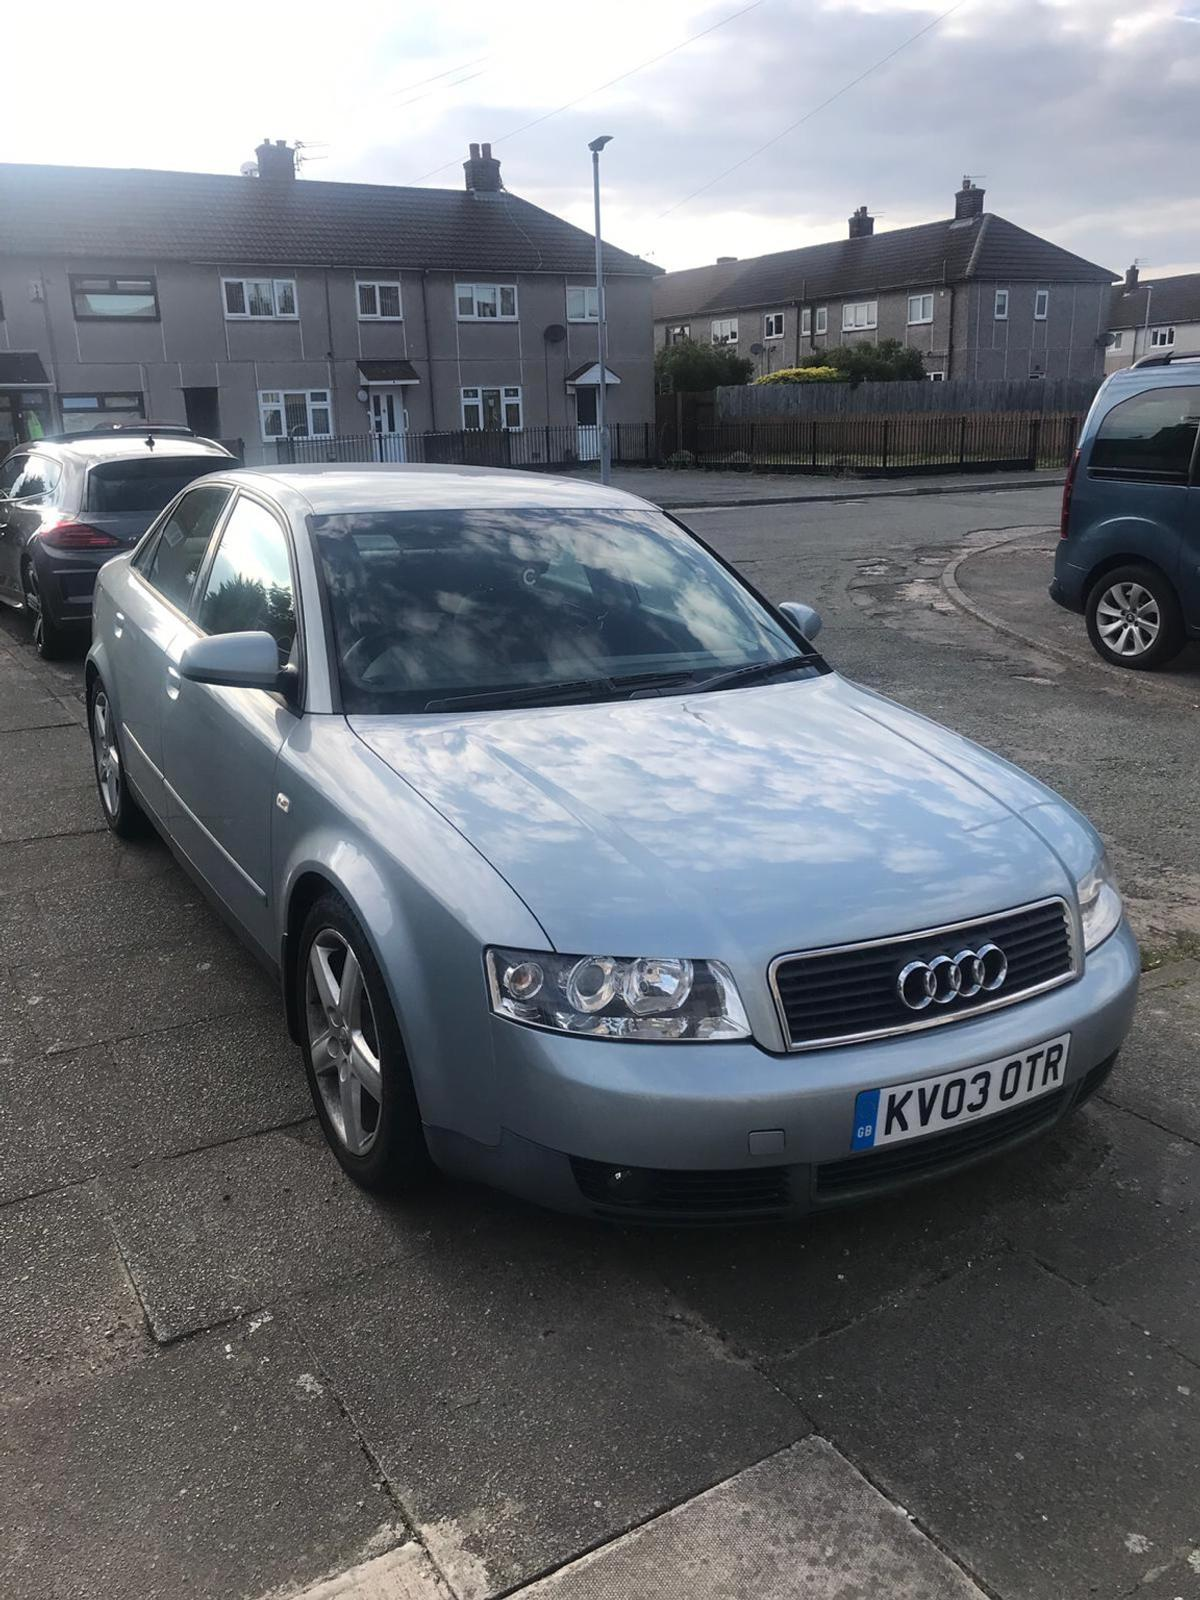 2003 Blue Audi A4 Tdi Sport In Wa8 Ditton For 300 00 For Sale Shpock